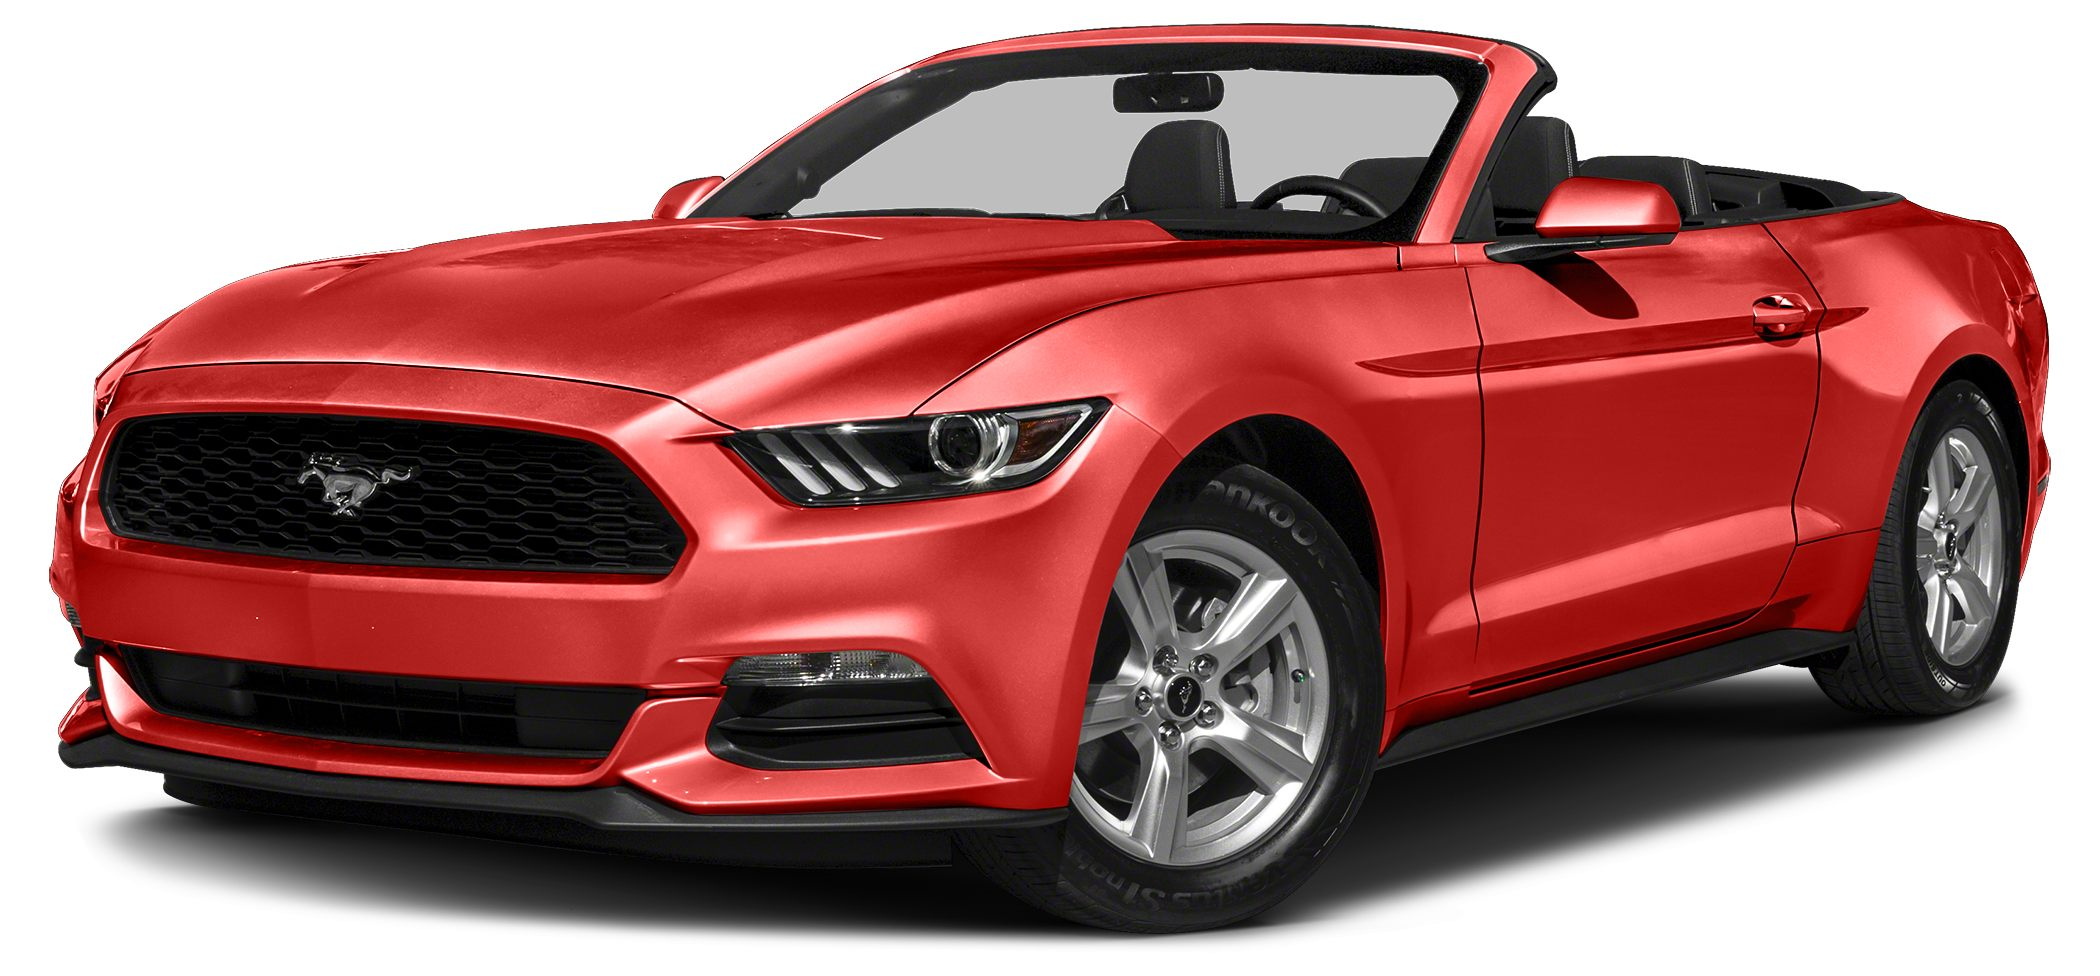 2015 Ford Mustang V6 MP3 COMPATIBLE BLUETOOTH SYNC VOICE ACTIVATED SYSTEM LOCAL